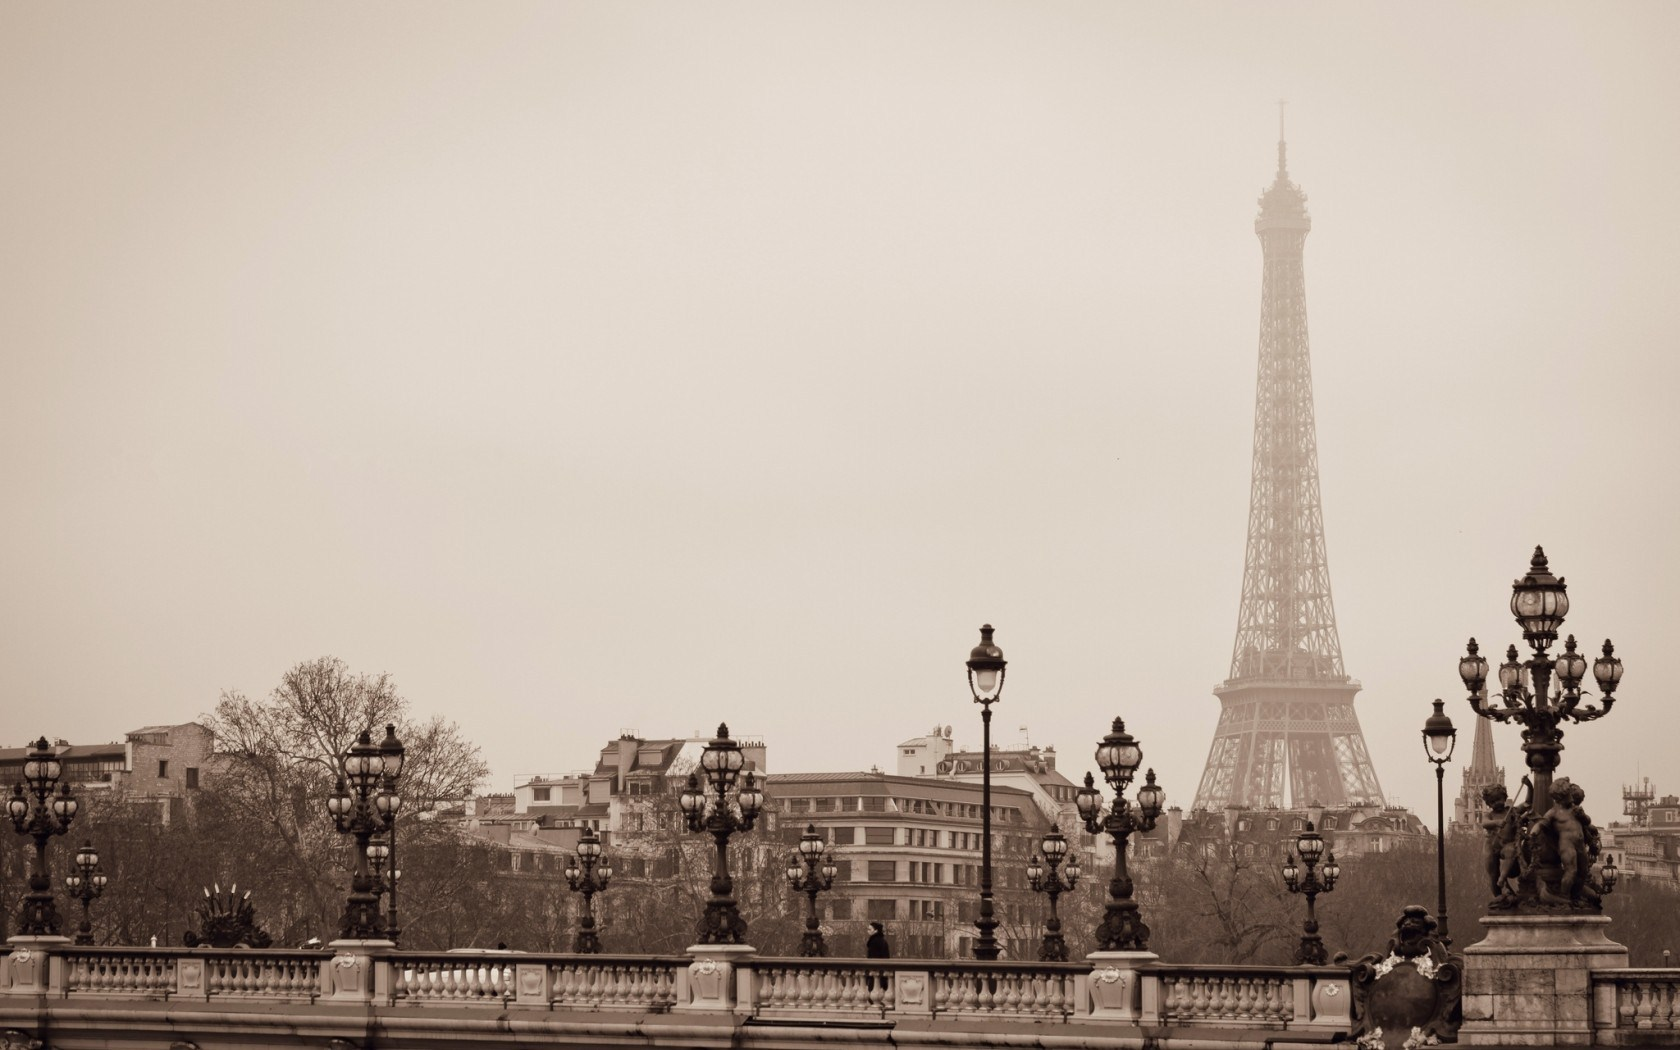 Eiffel tower paris france 1680 x 1050 download close